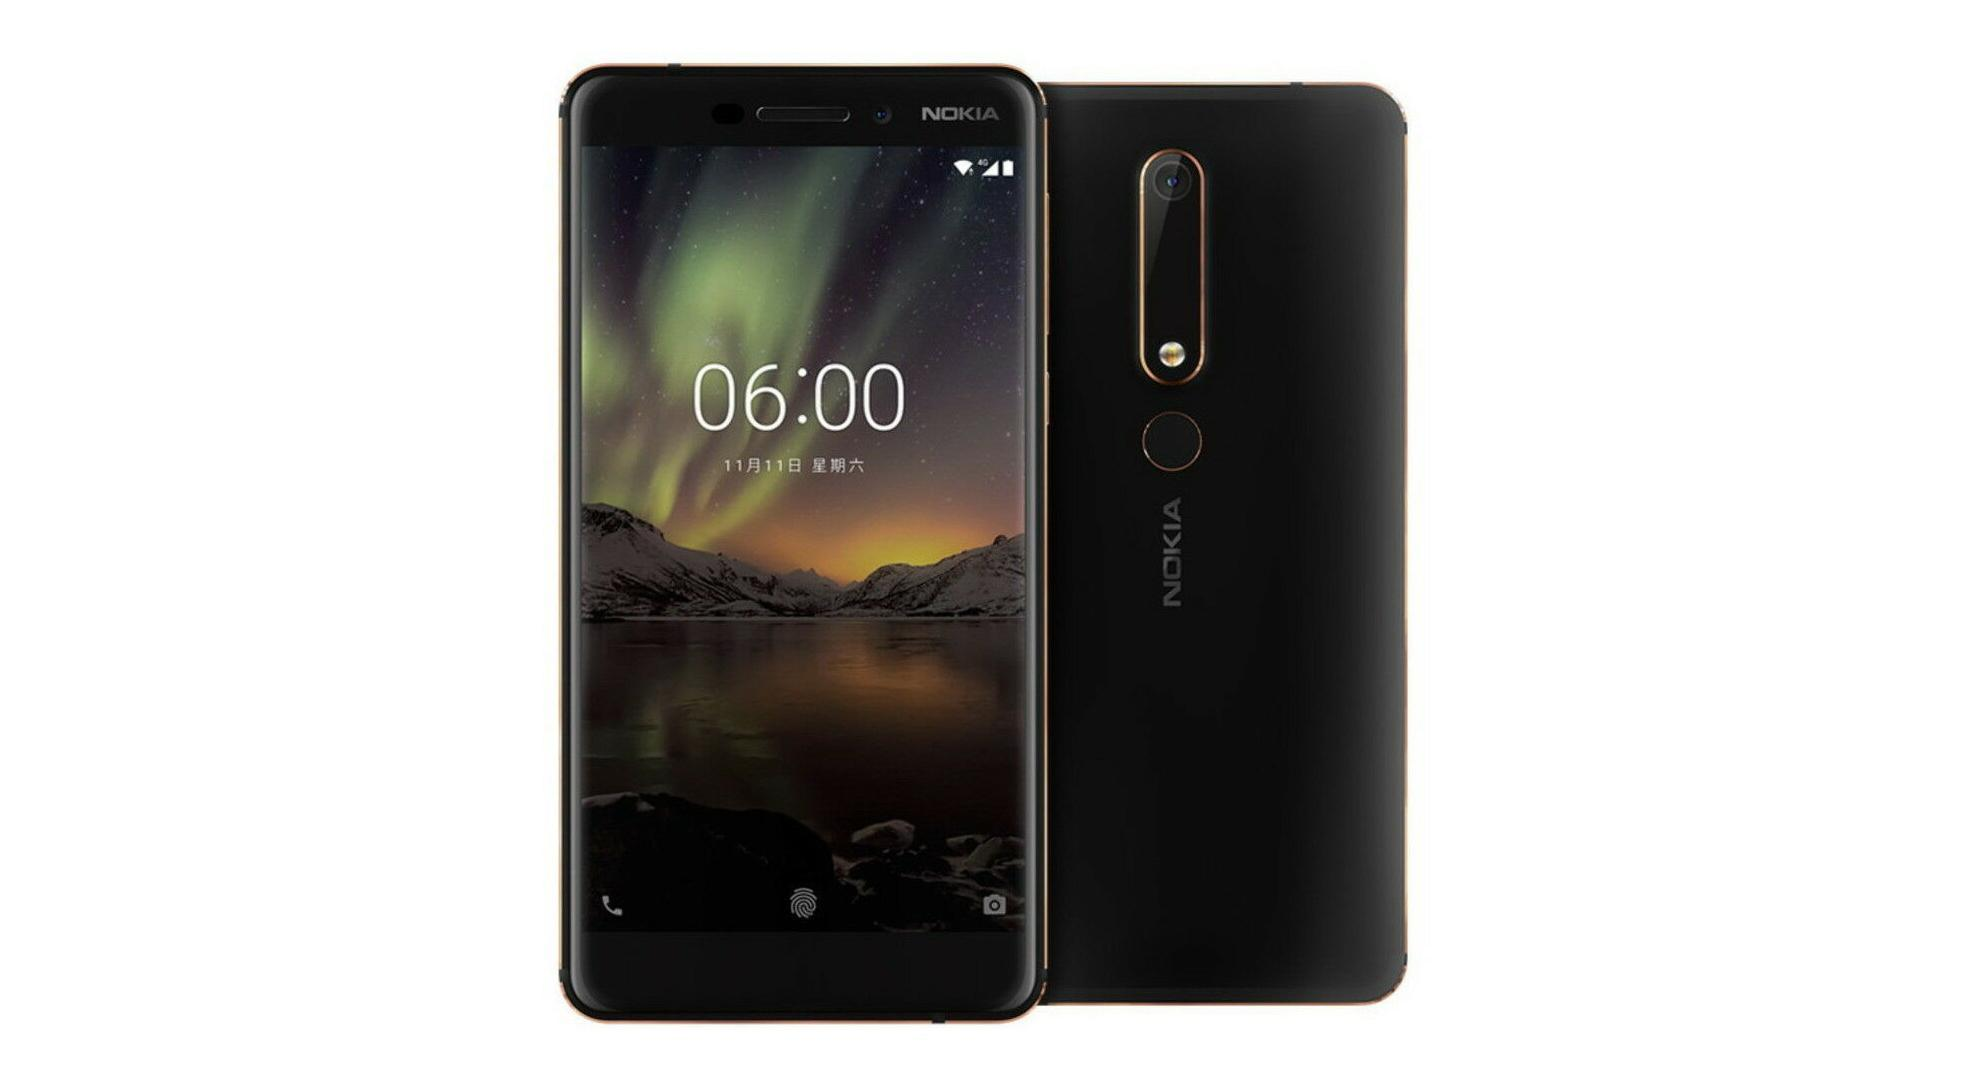 🔥 Bon plan : le Nokia 6 2018 (avec Android One) descend à 135 euros